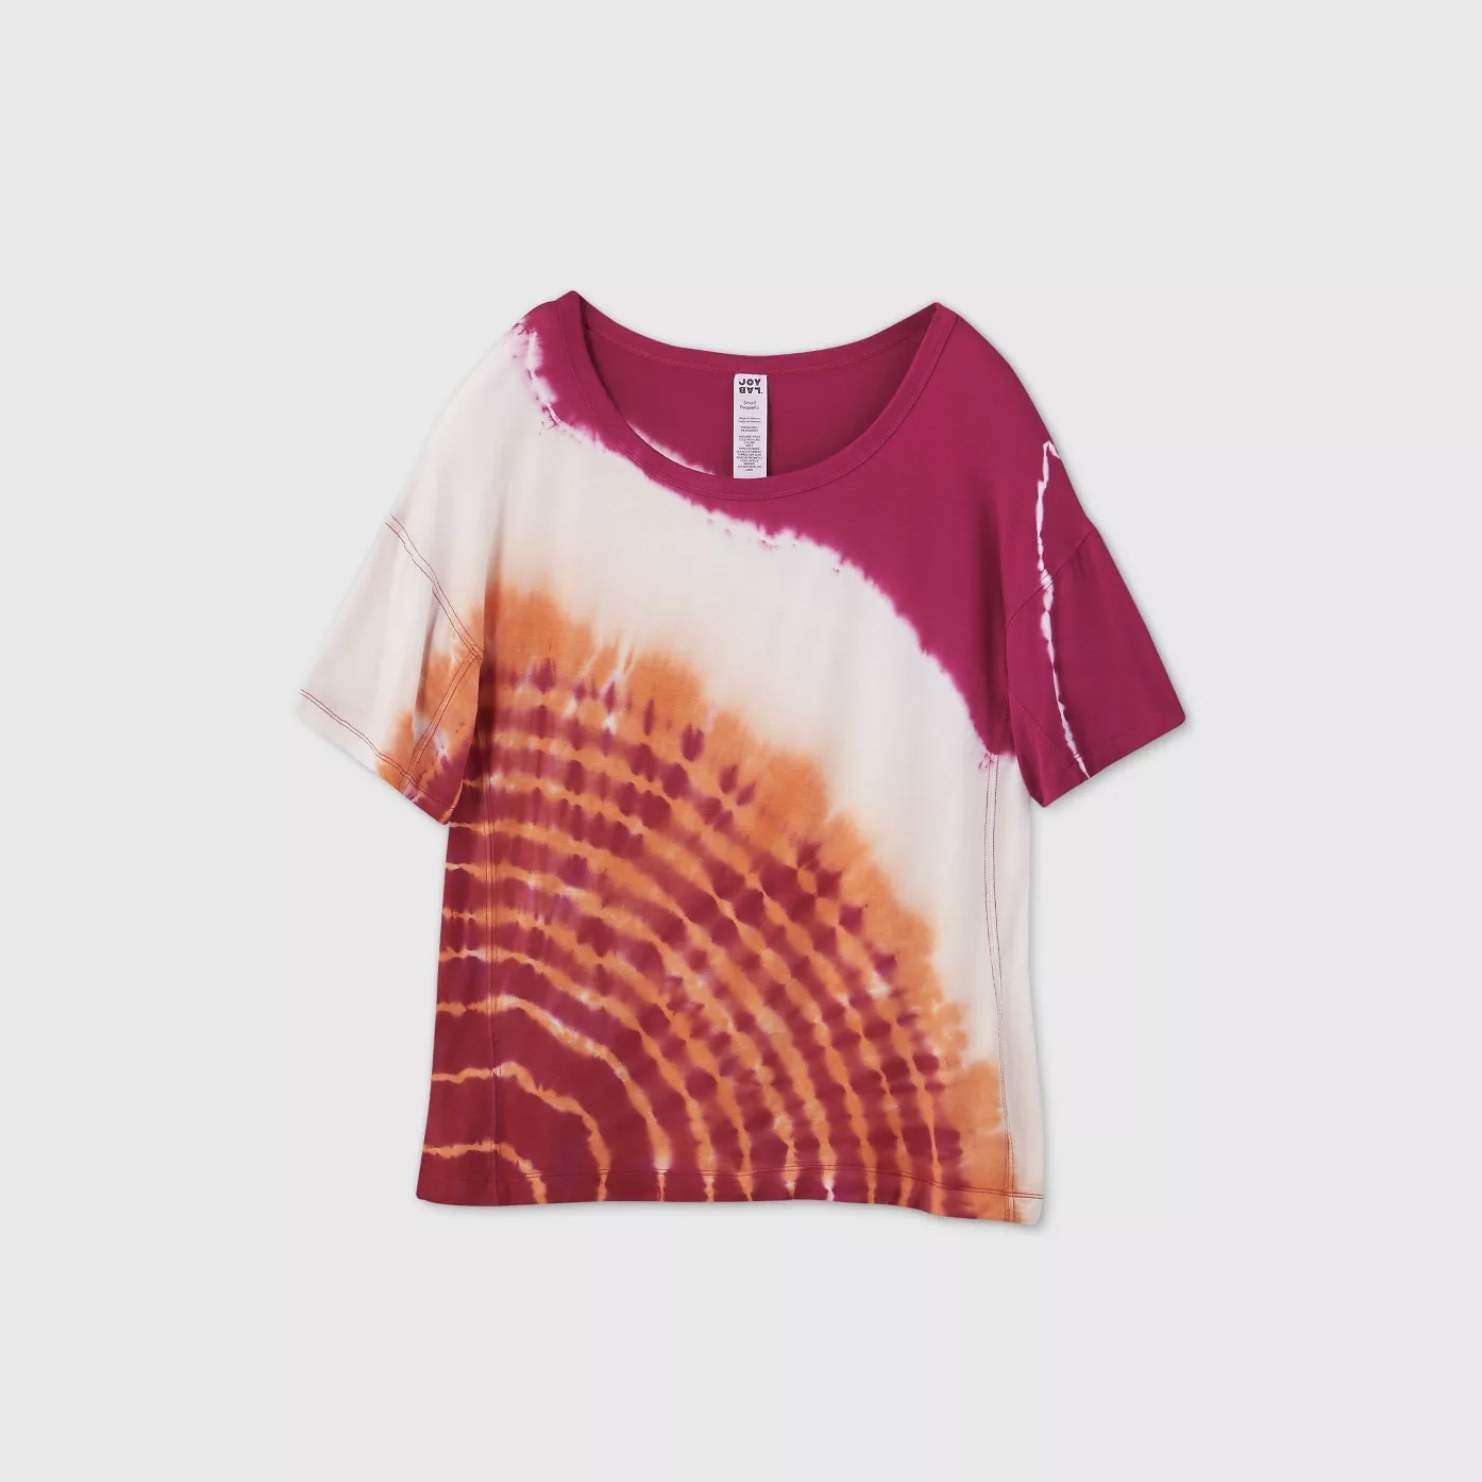 A pink, white, and orange tie-dye short sleeve top with a scooped neckline